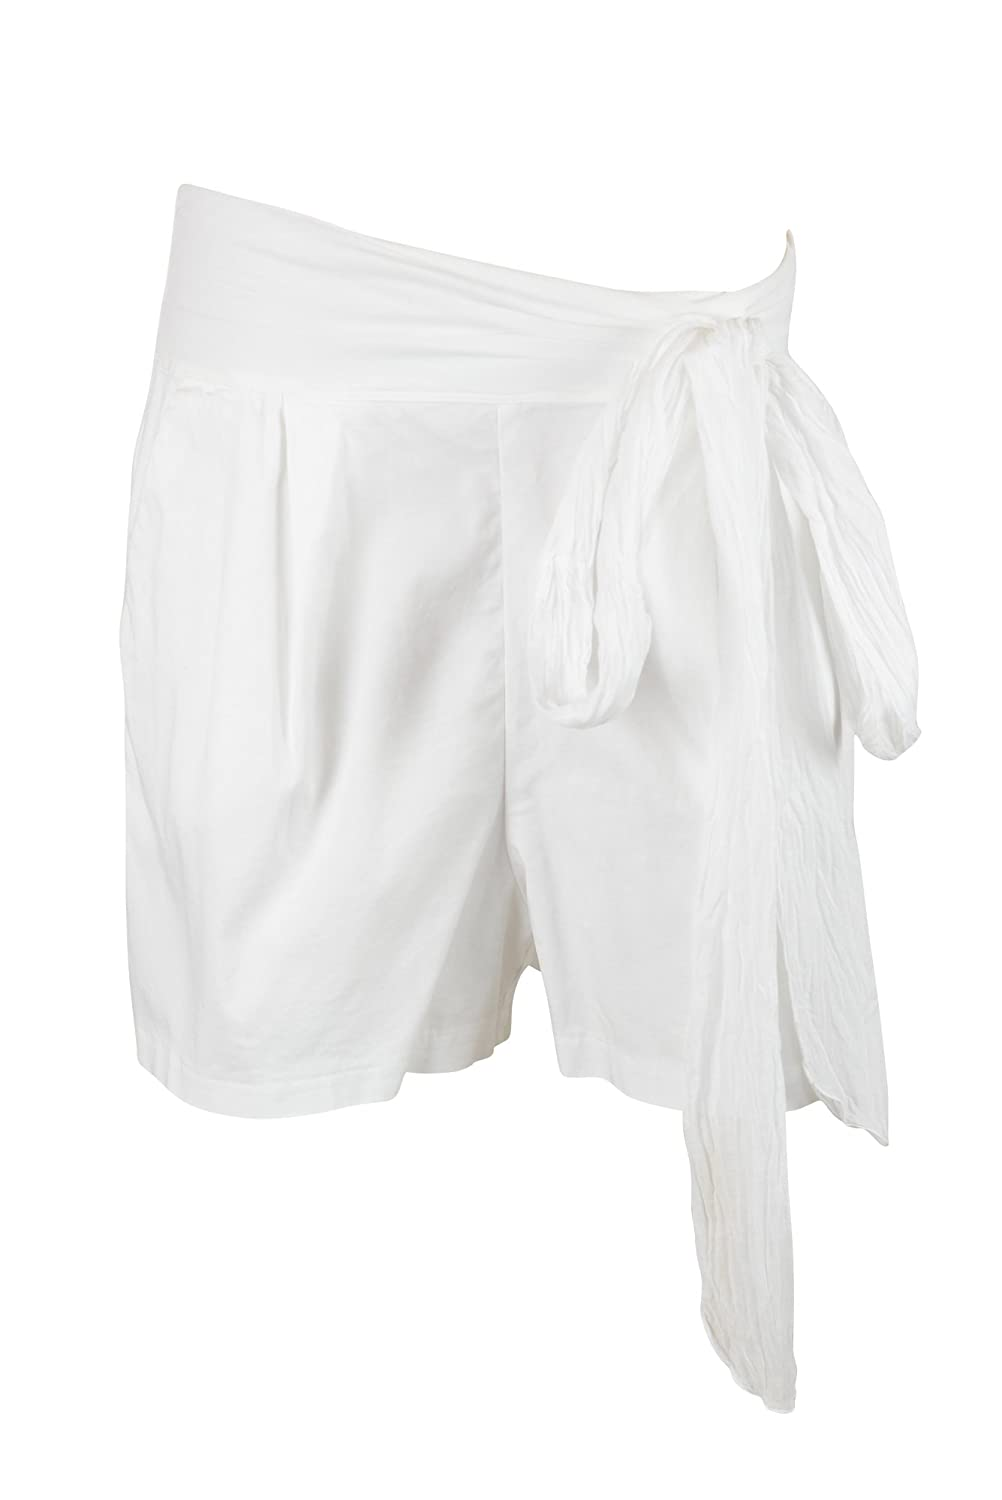 European Culture Womens Pull On Tie Waist Loose Fit Shorts